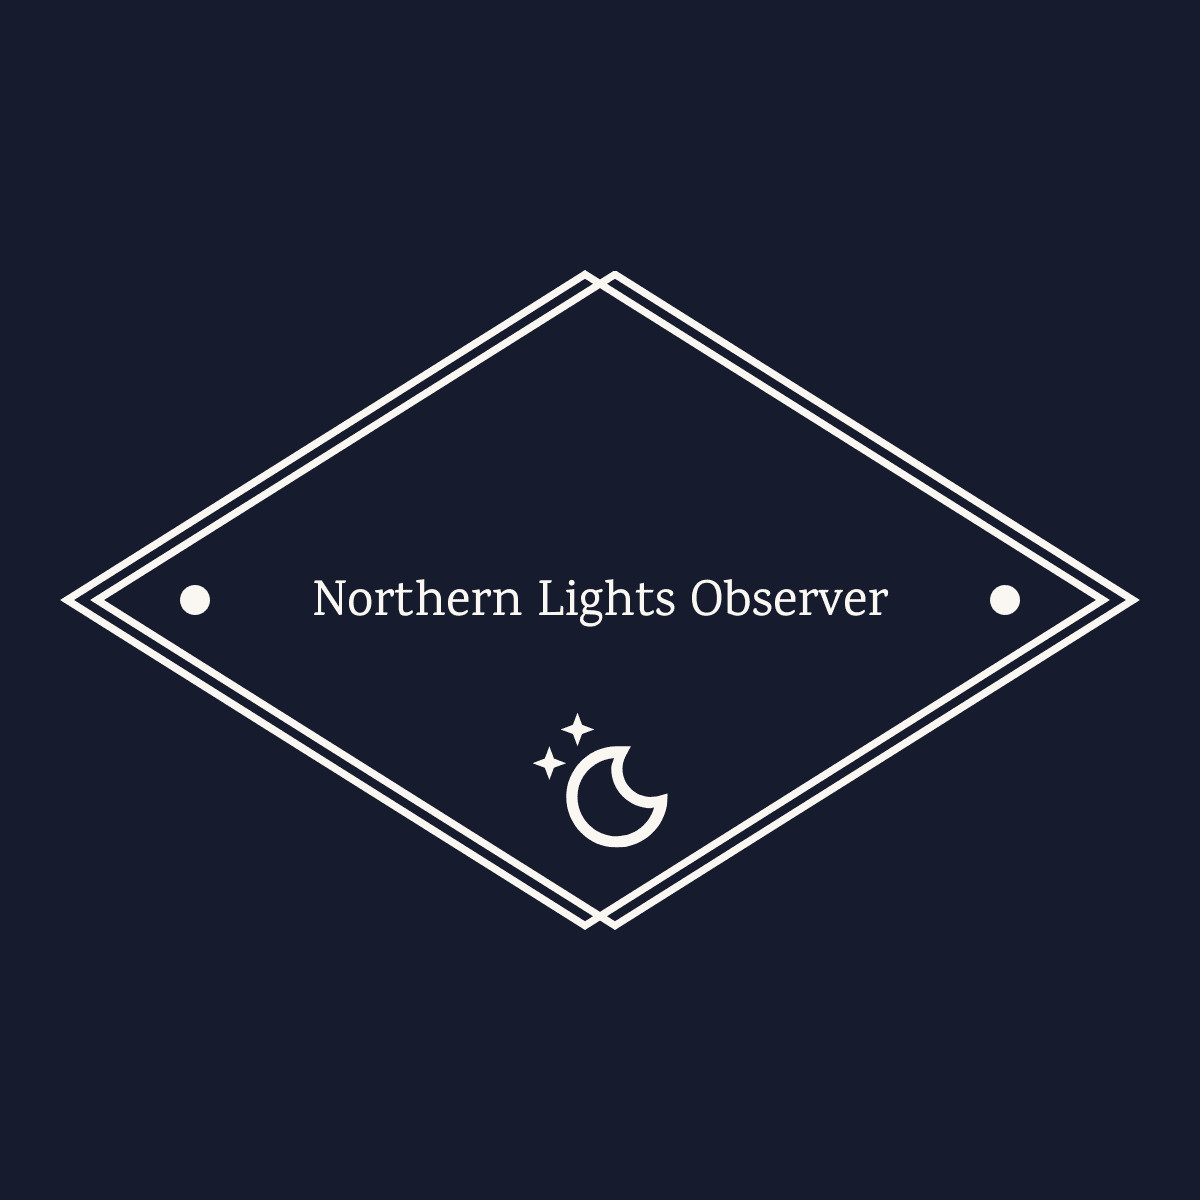 Northern Lights Observer